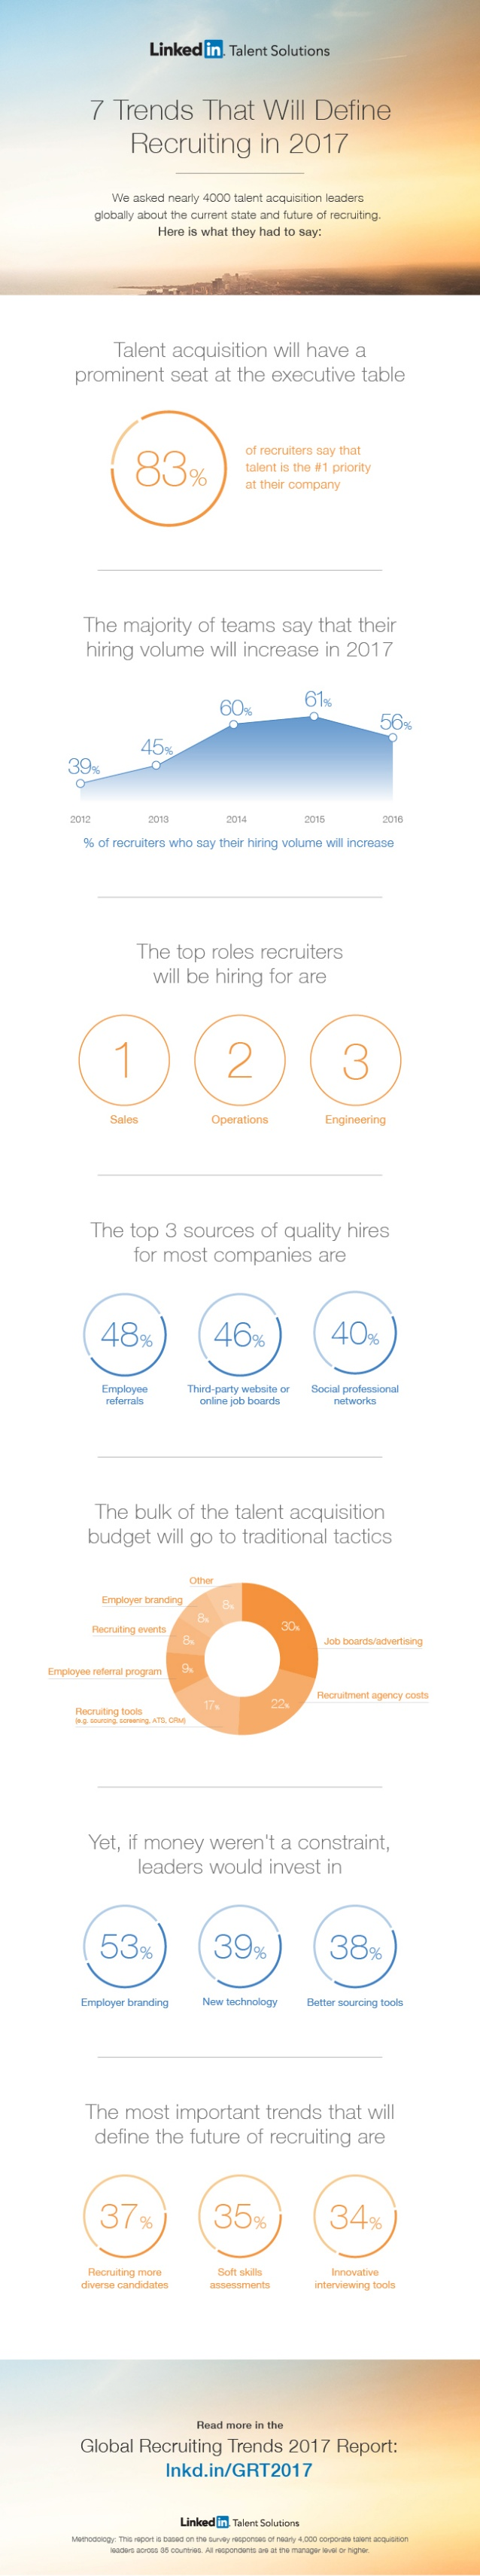 global-recruiting-trends-2017-infographic